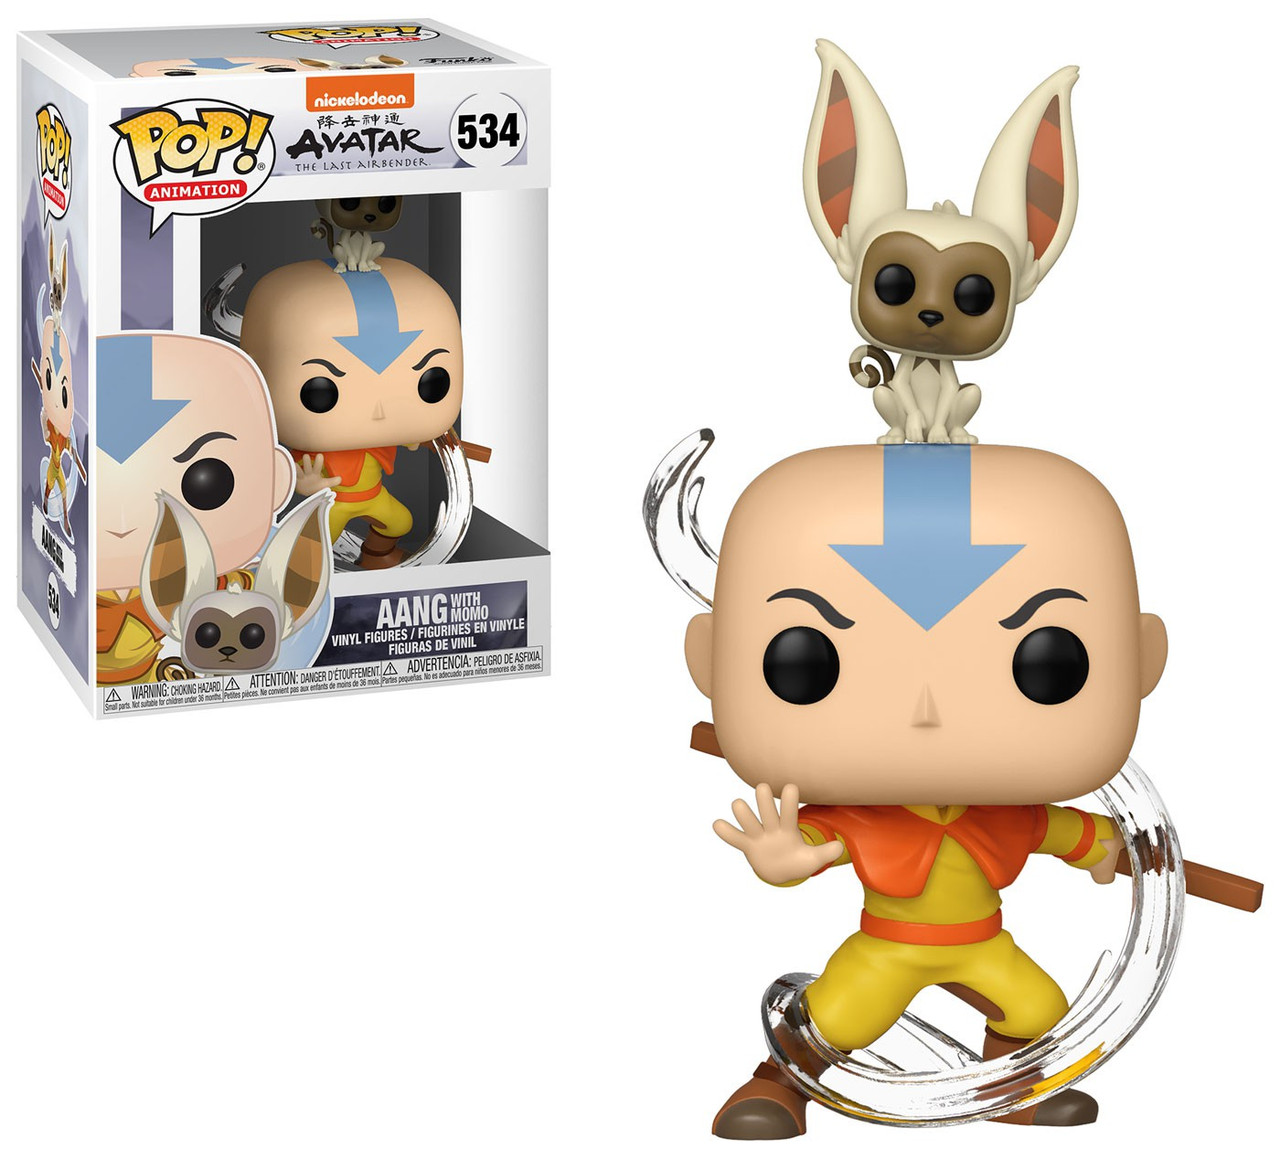 Funko Avatar The Last Airbender Funko Pop Animation Aang With Momo